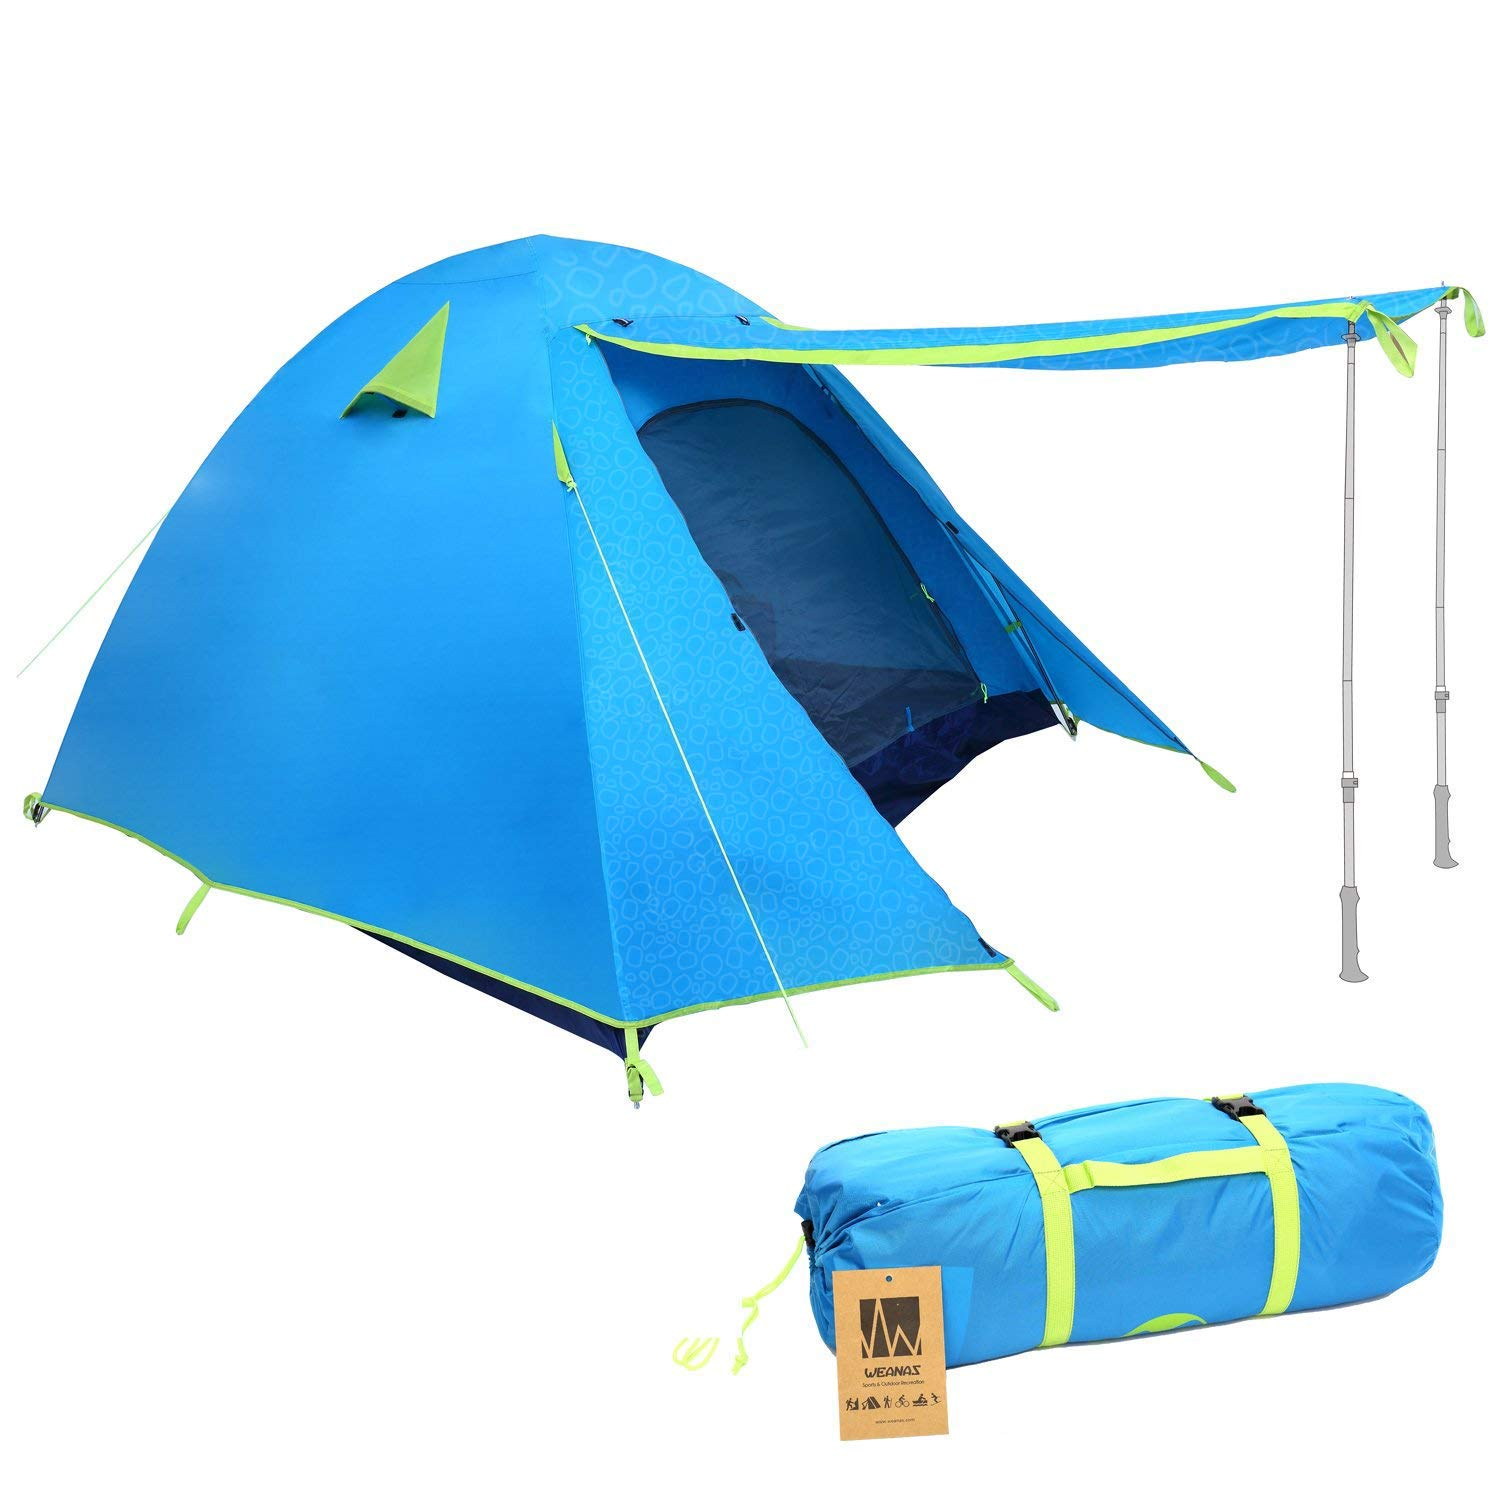 Weanas Professional Backpacking Tent 2 3 4 Person 3 Season Weatherproof Double Layer Large Space Aluminum Rod for Outdoor Family Camping Hunting Hiking Adventure Travel (Azure, 1-2 Person)